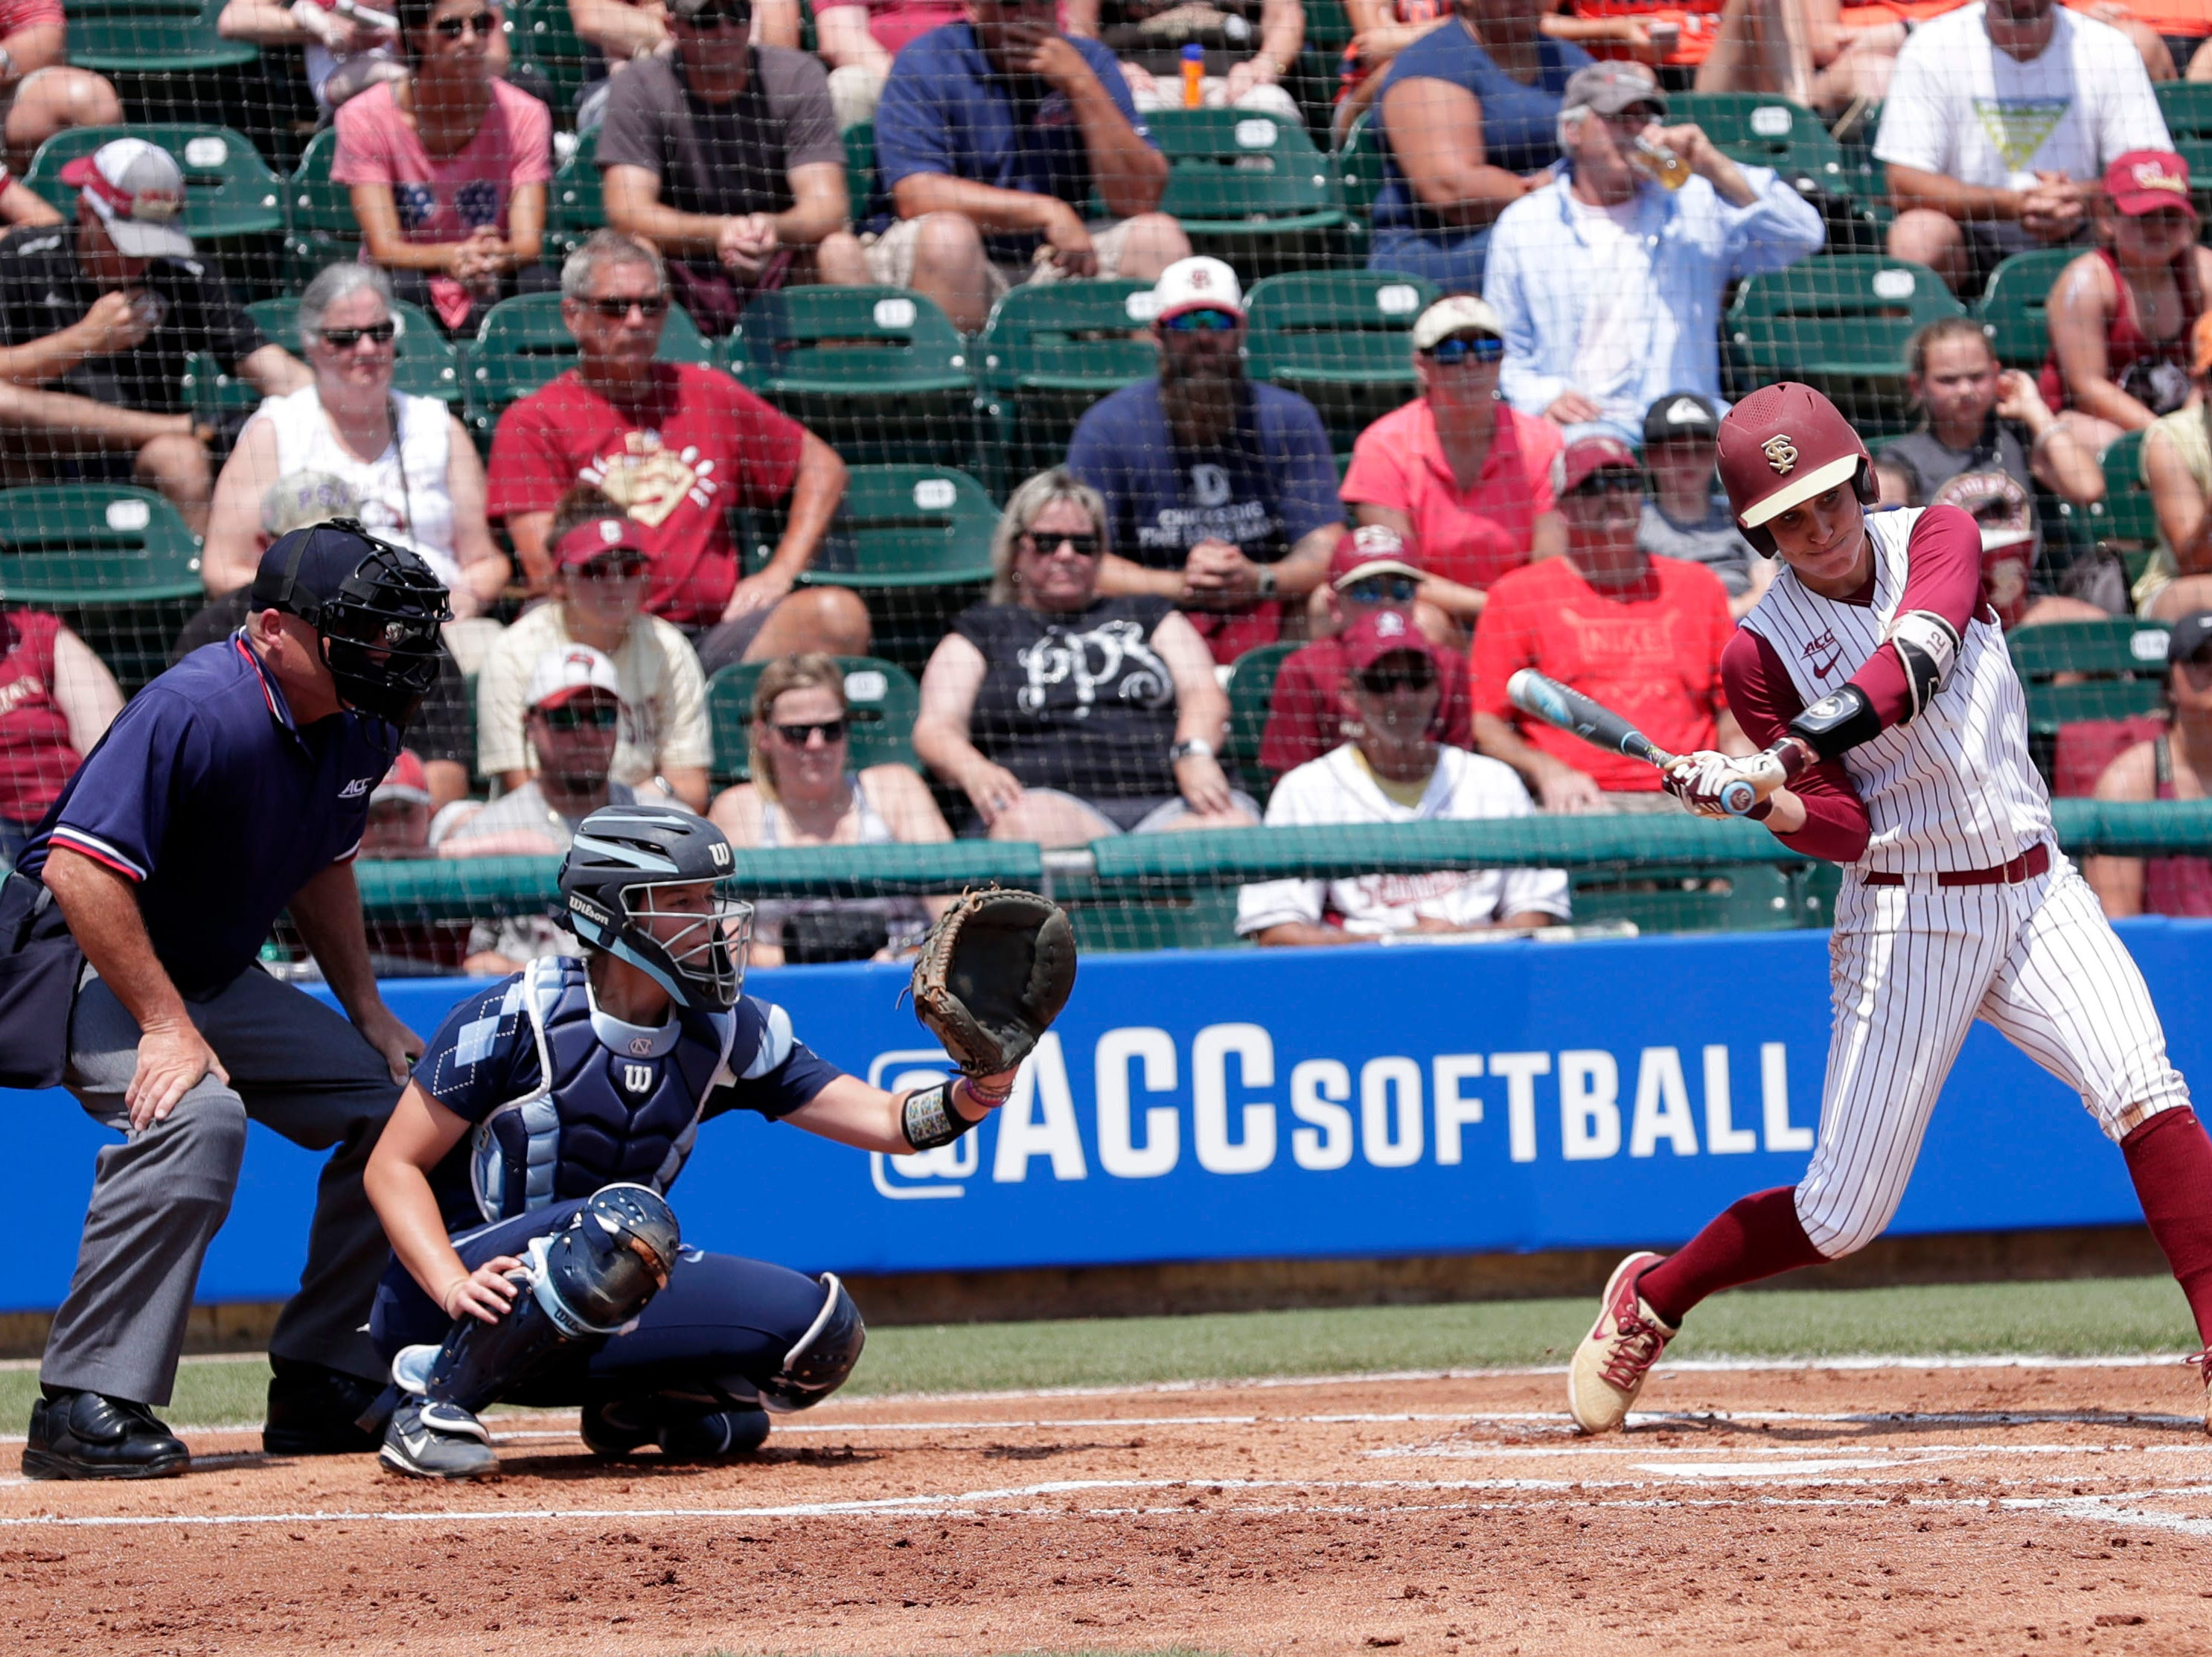 Florida State Seminoles infielder Carsyn Gordon (12) swings at the pitch. The Florida State Seminoles host the UNC Tar Heels for the ACC Softball Tournament finals Saturday, May 11, 2019.